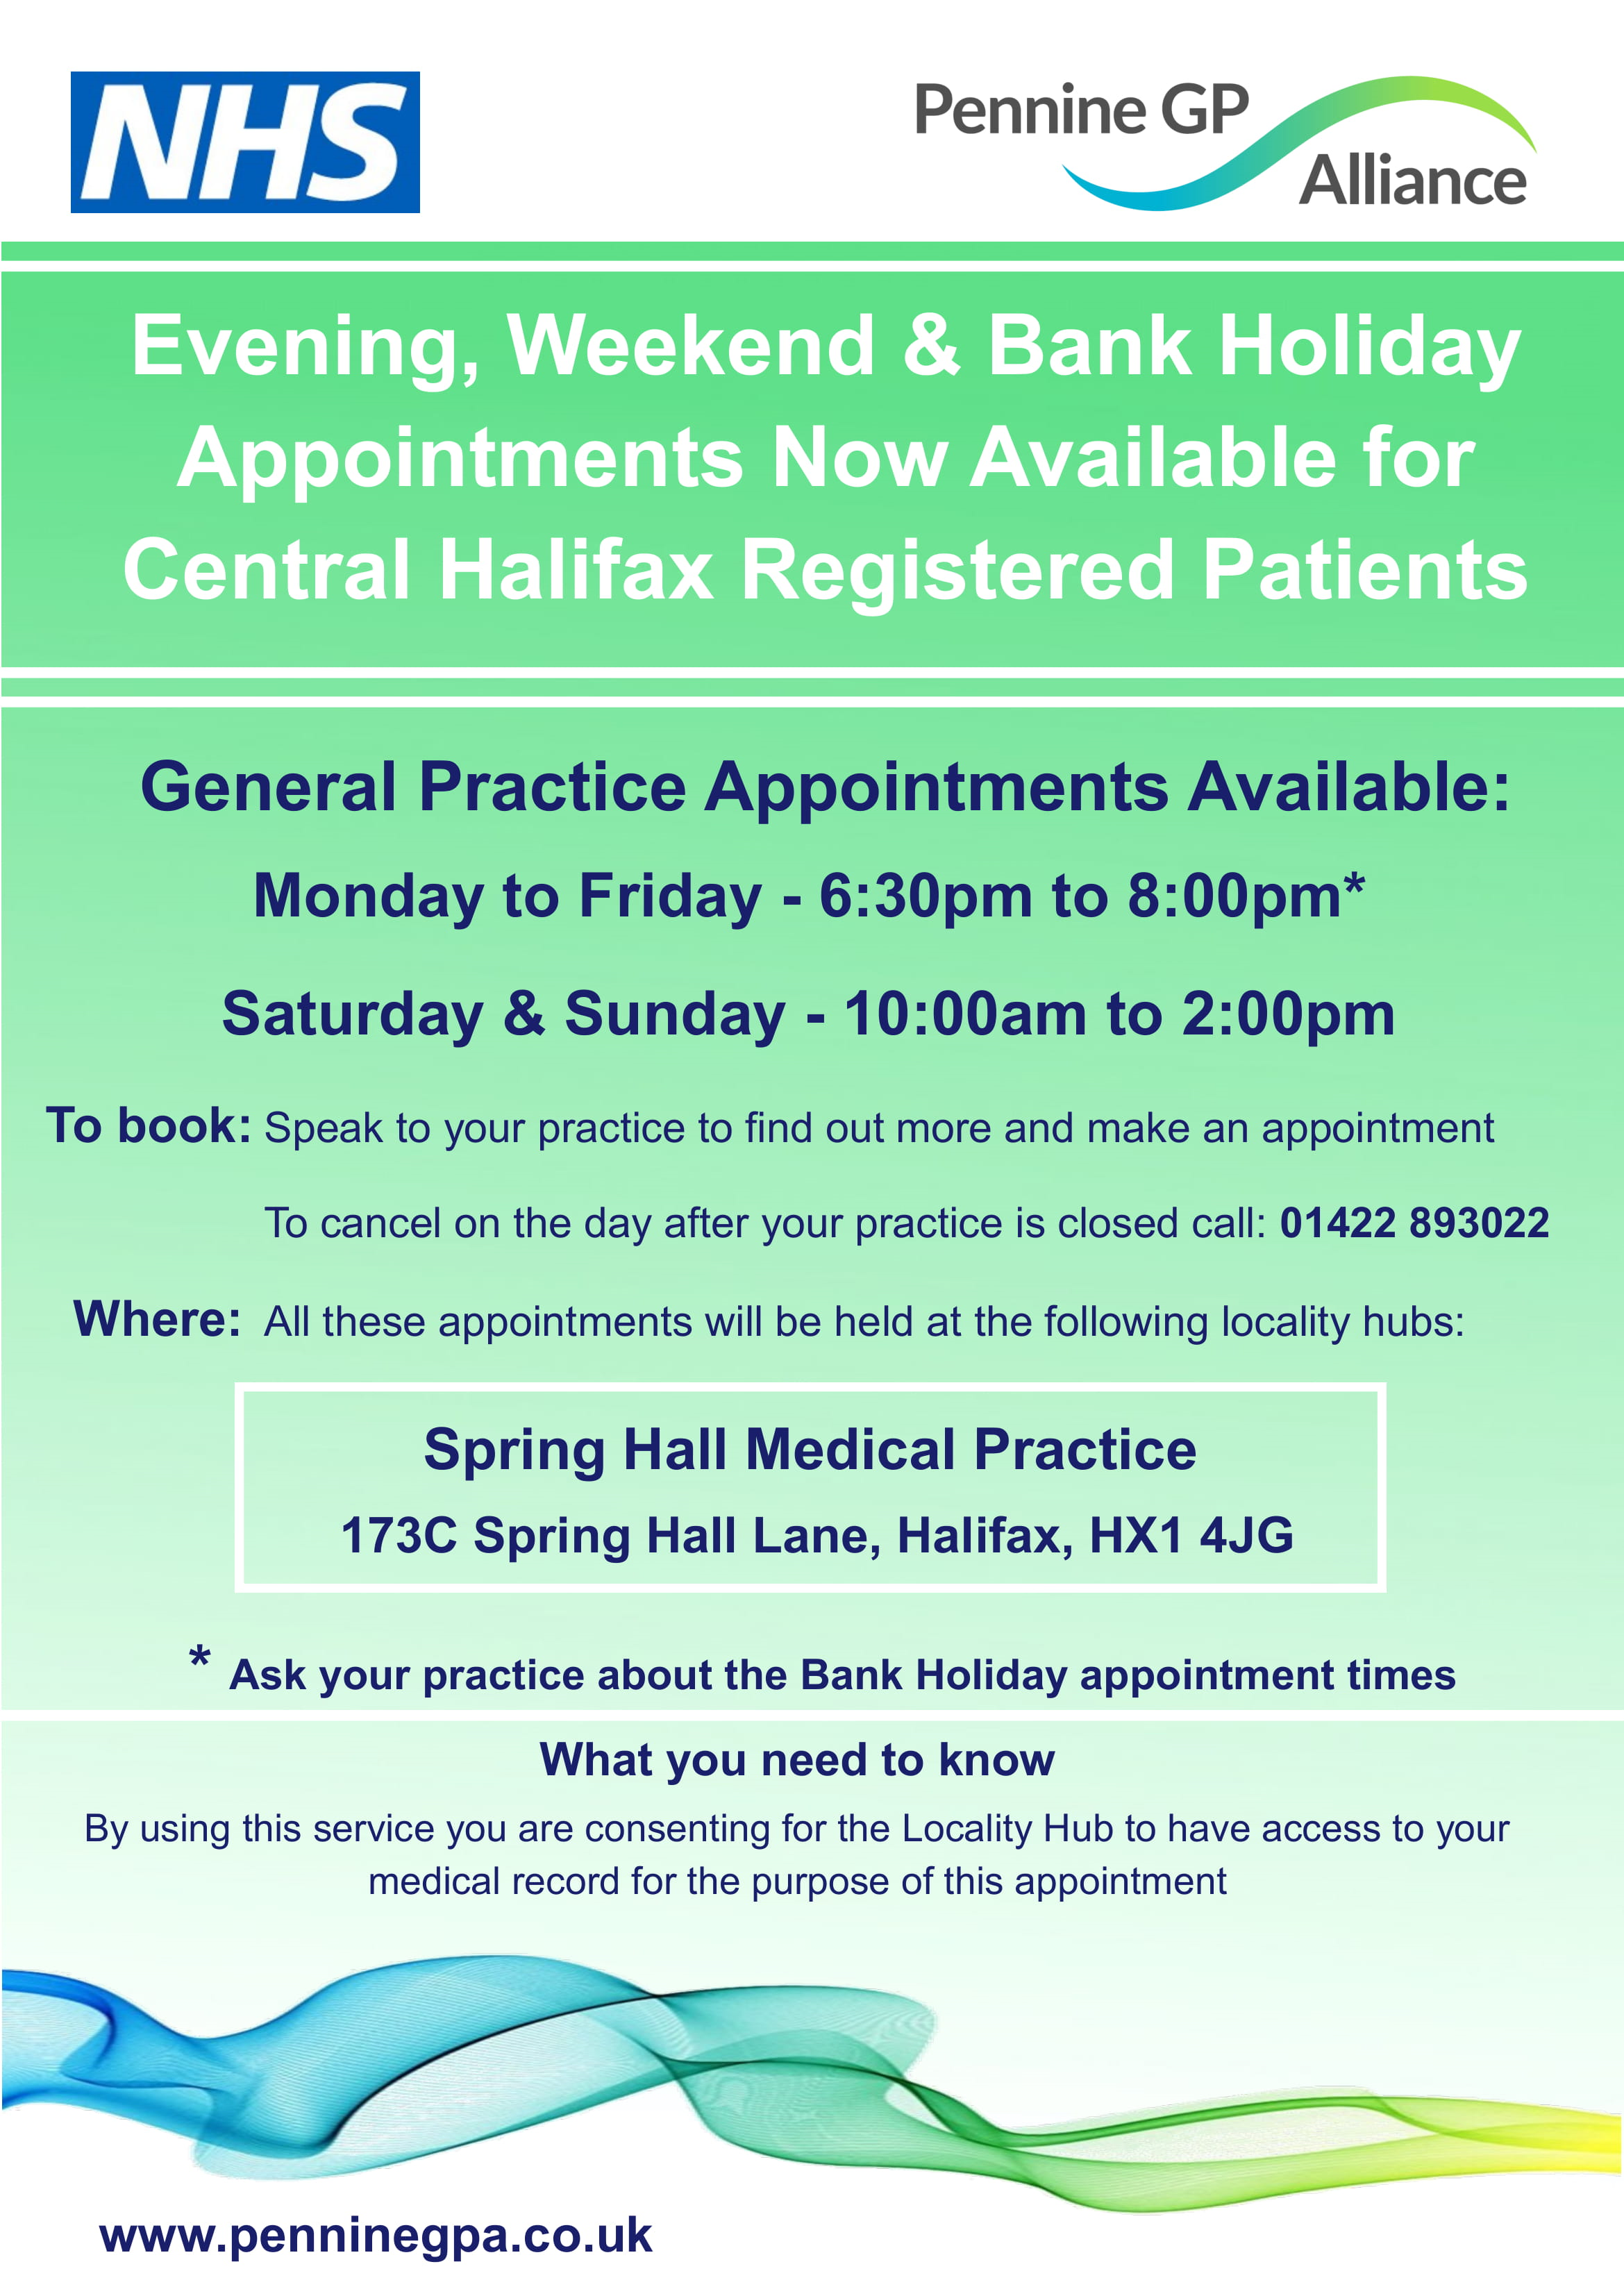 Central Halifax Practices